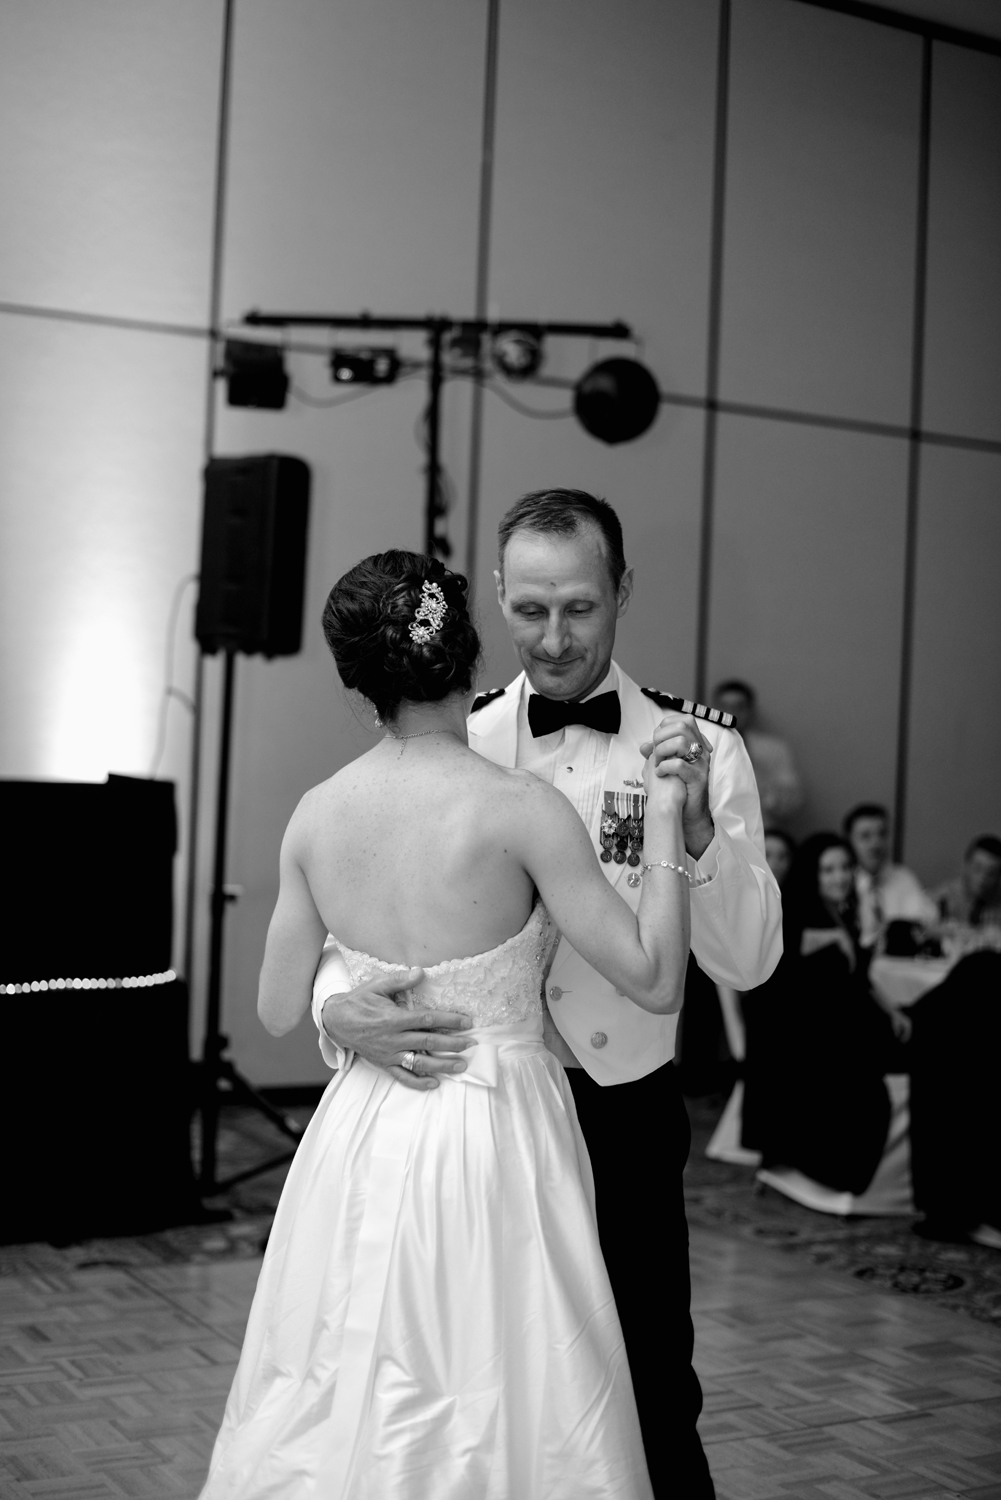 Father/daughter wedding dance | Maria Grace Photography